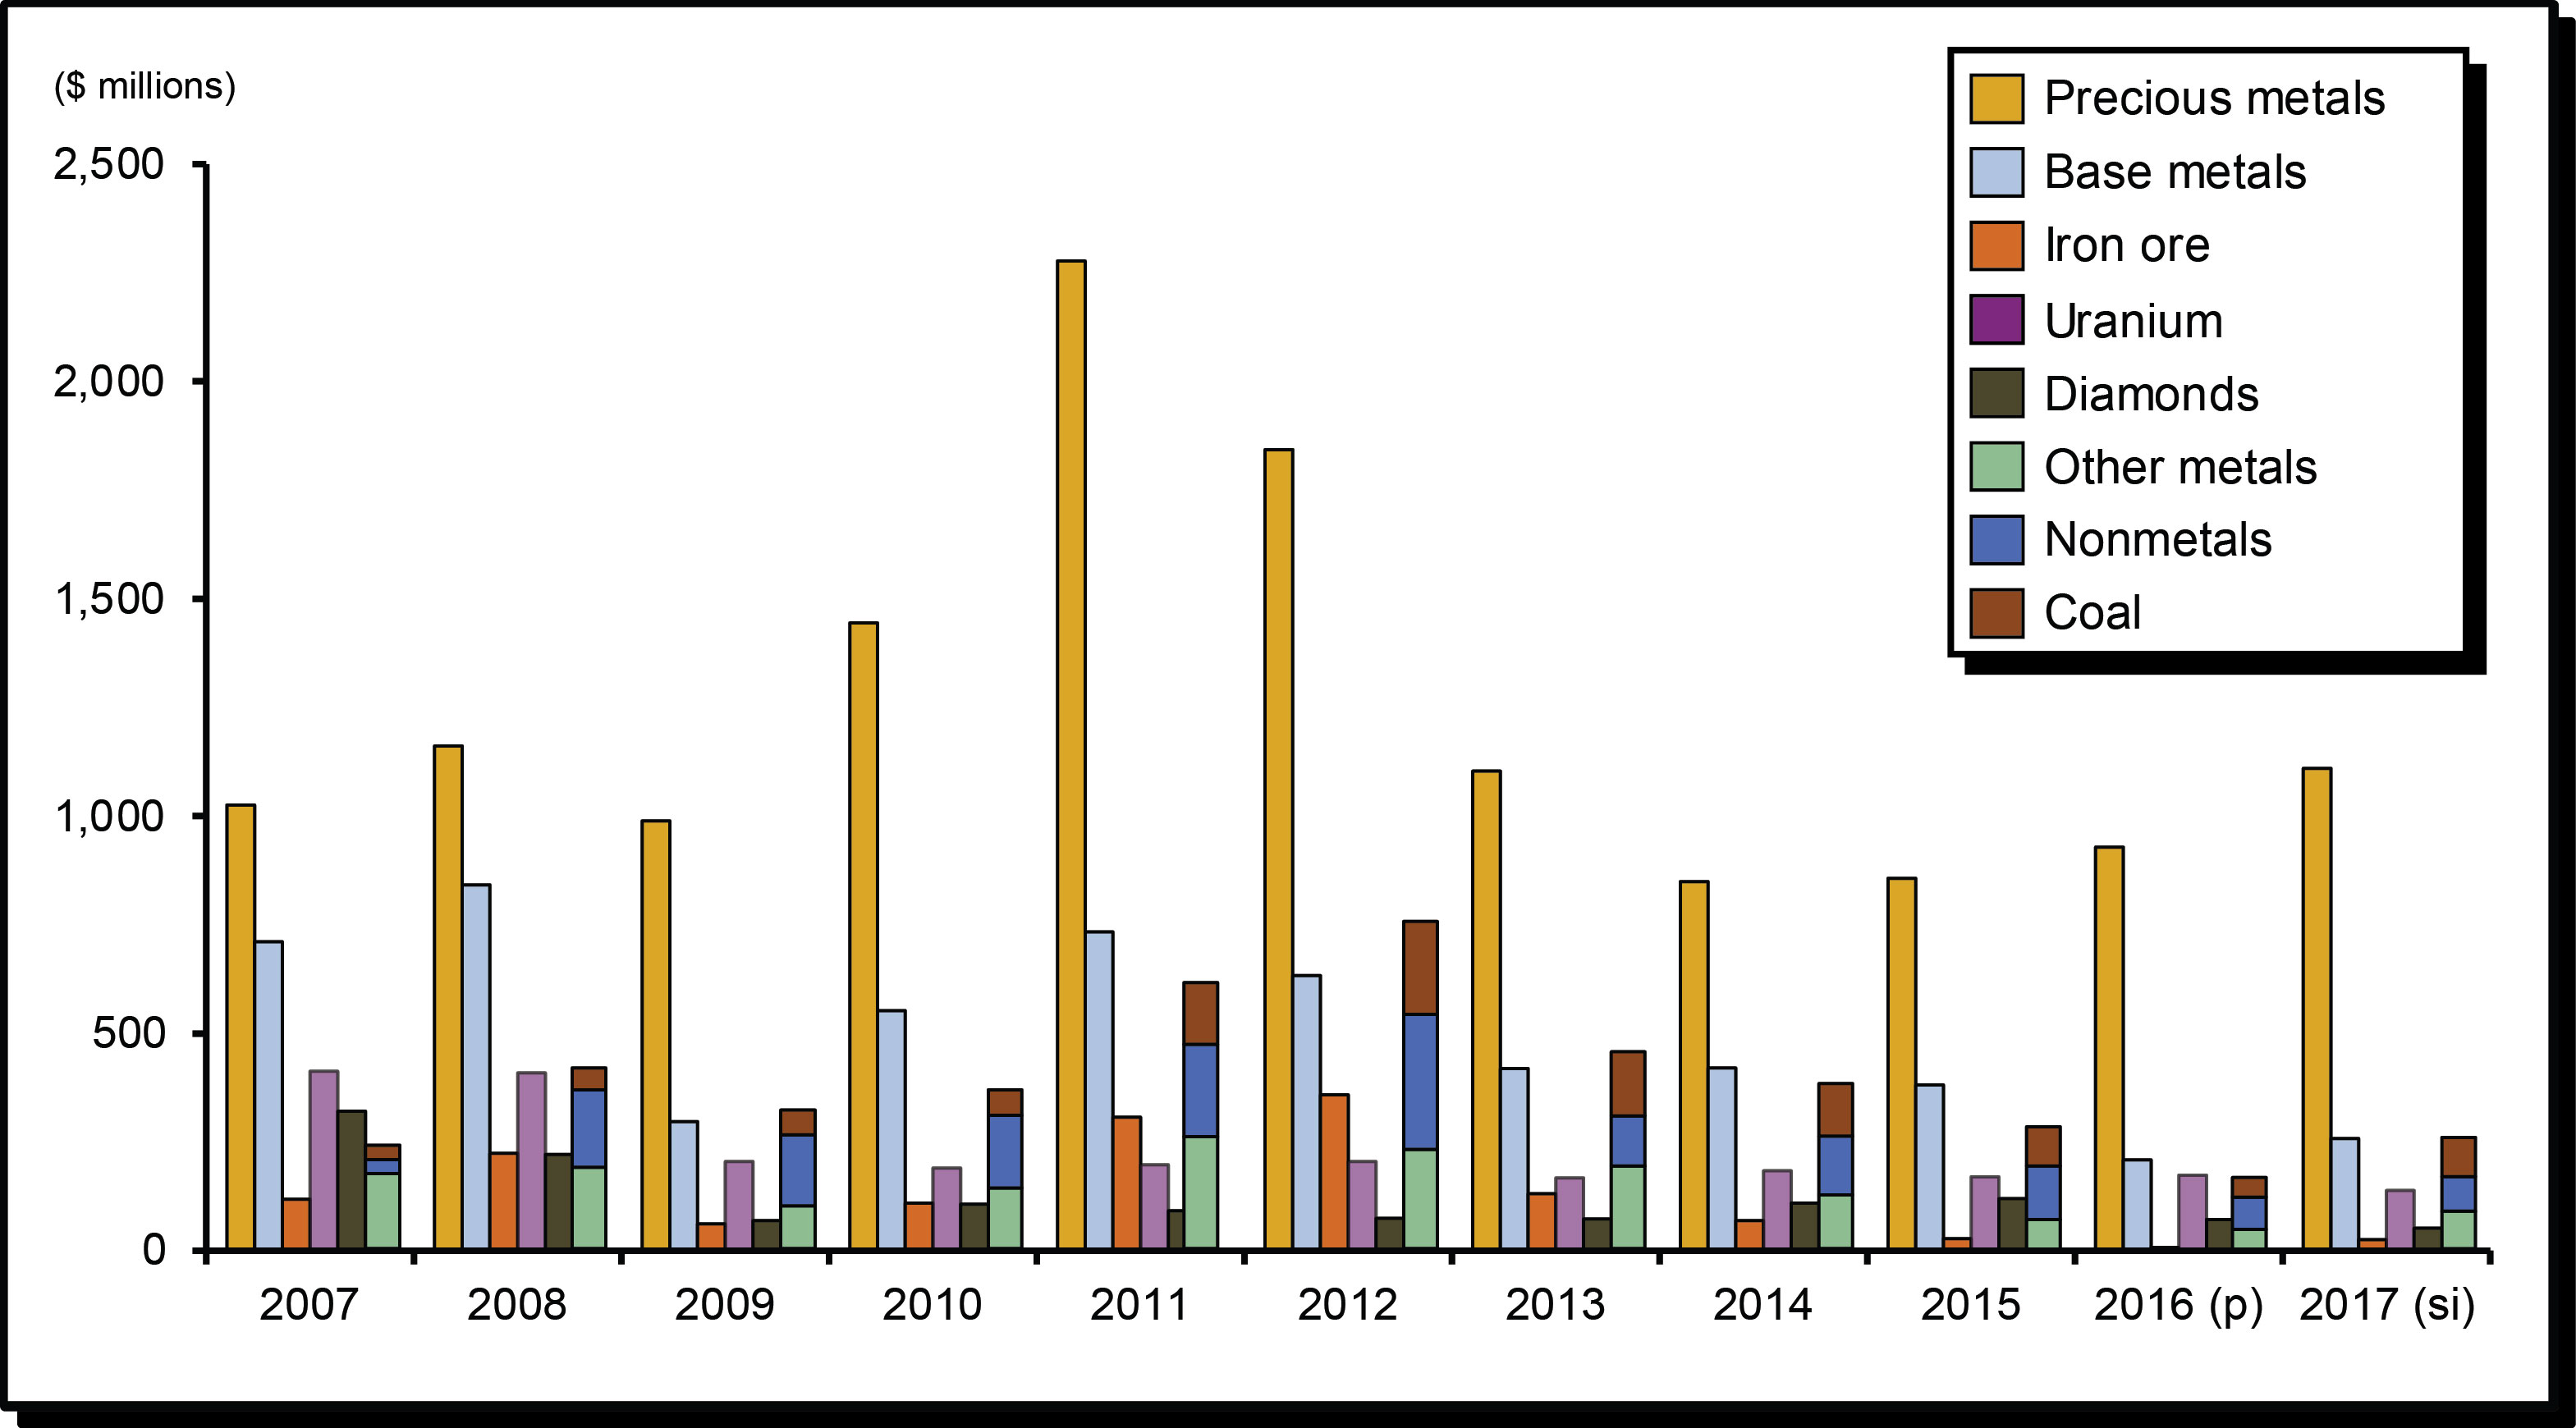 Figure 4 is a bar chart showing exploration and deposit appraisal expenditures